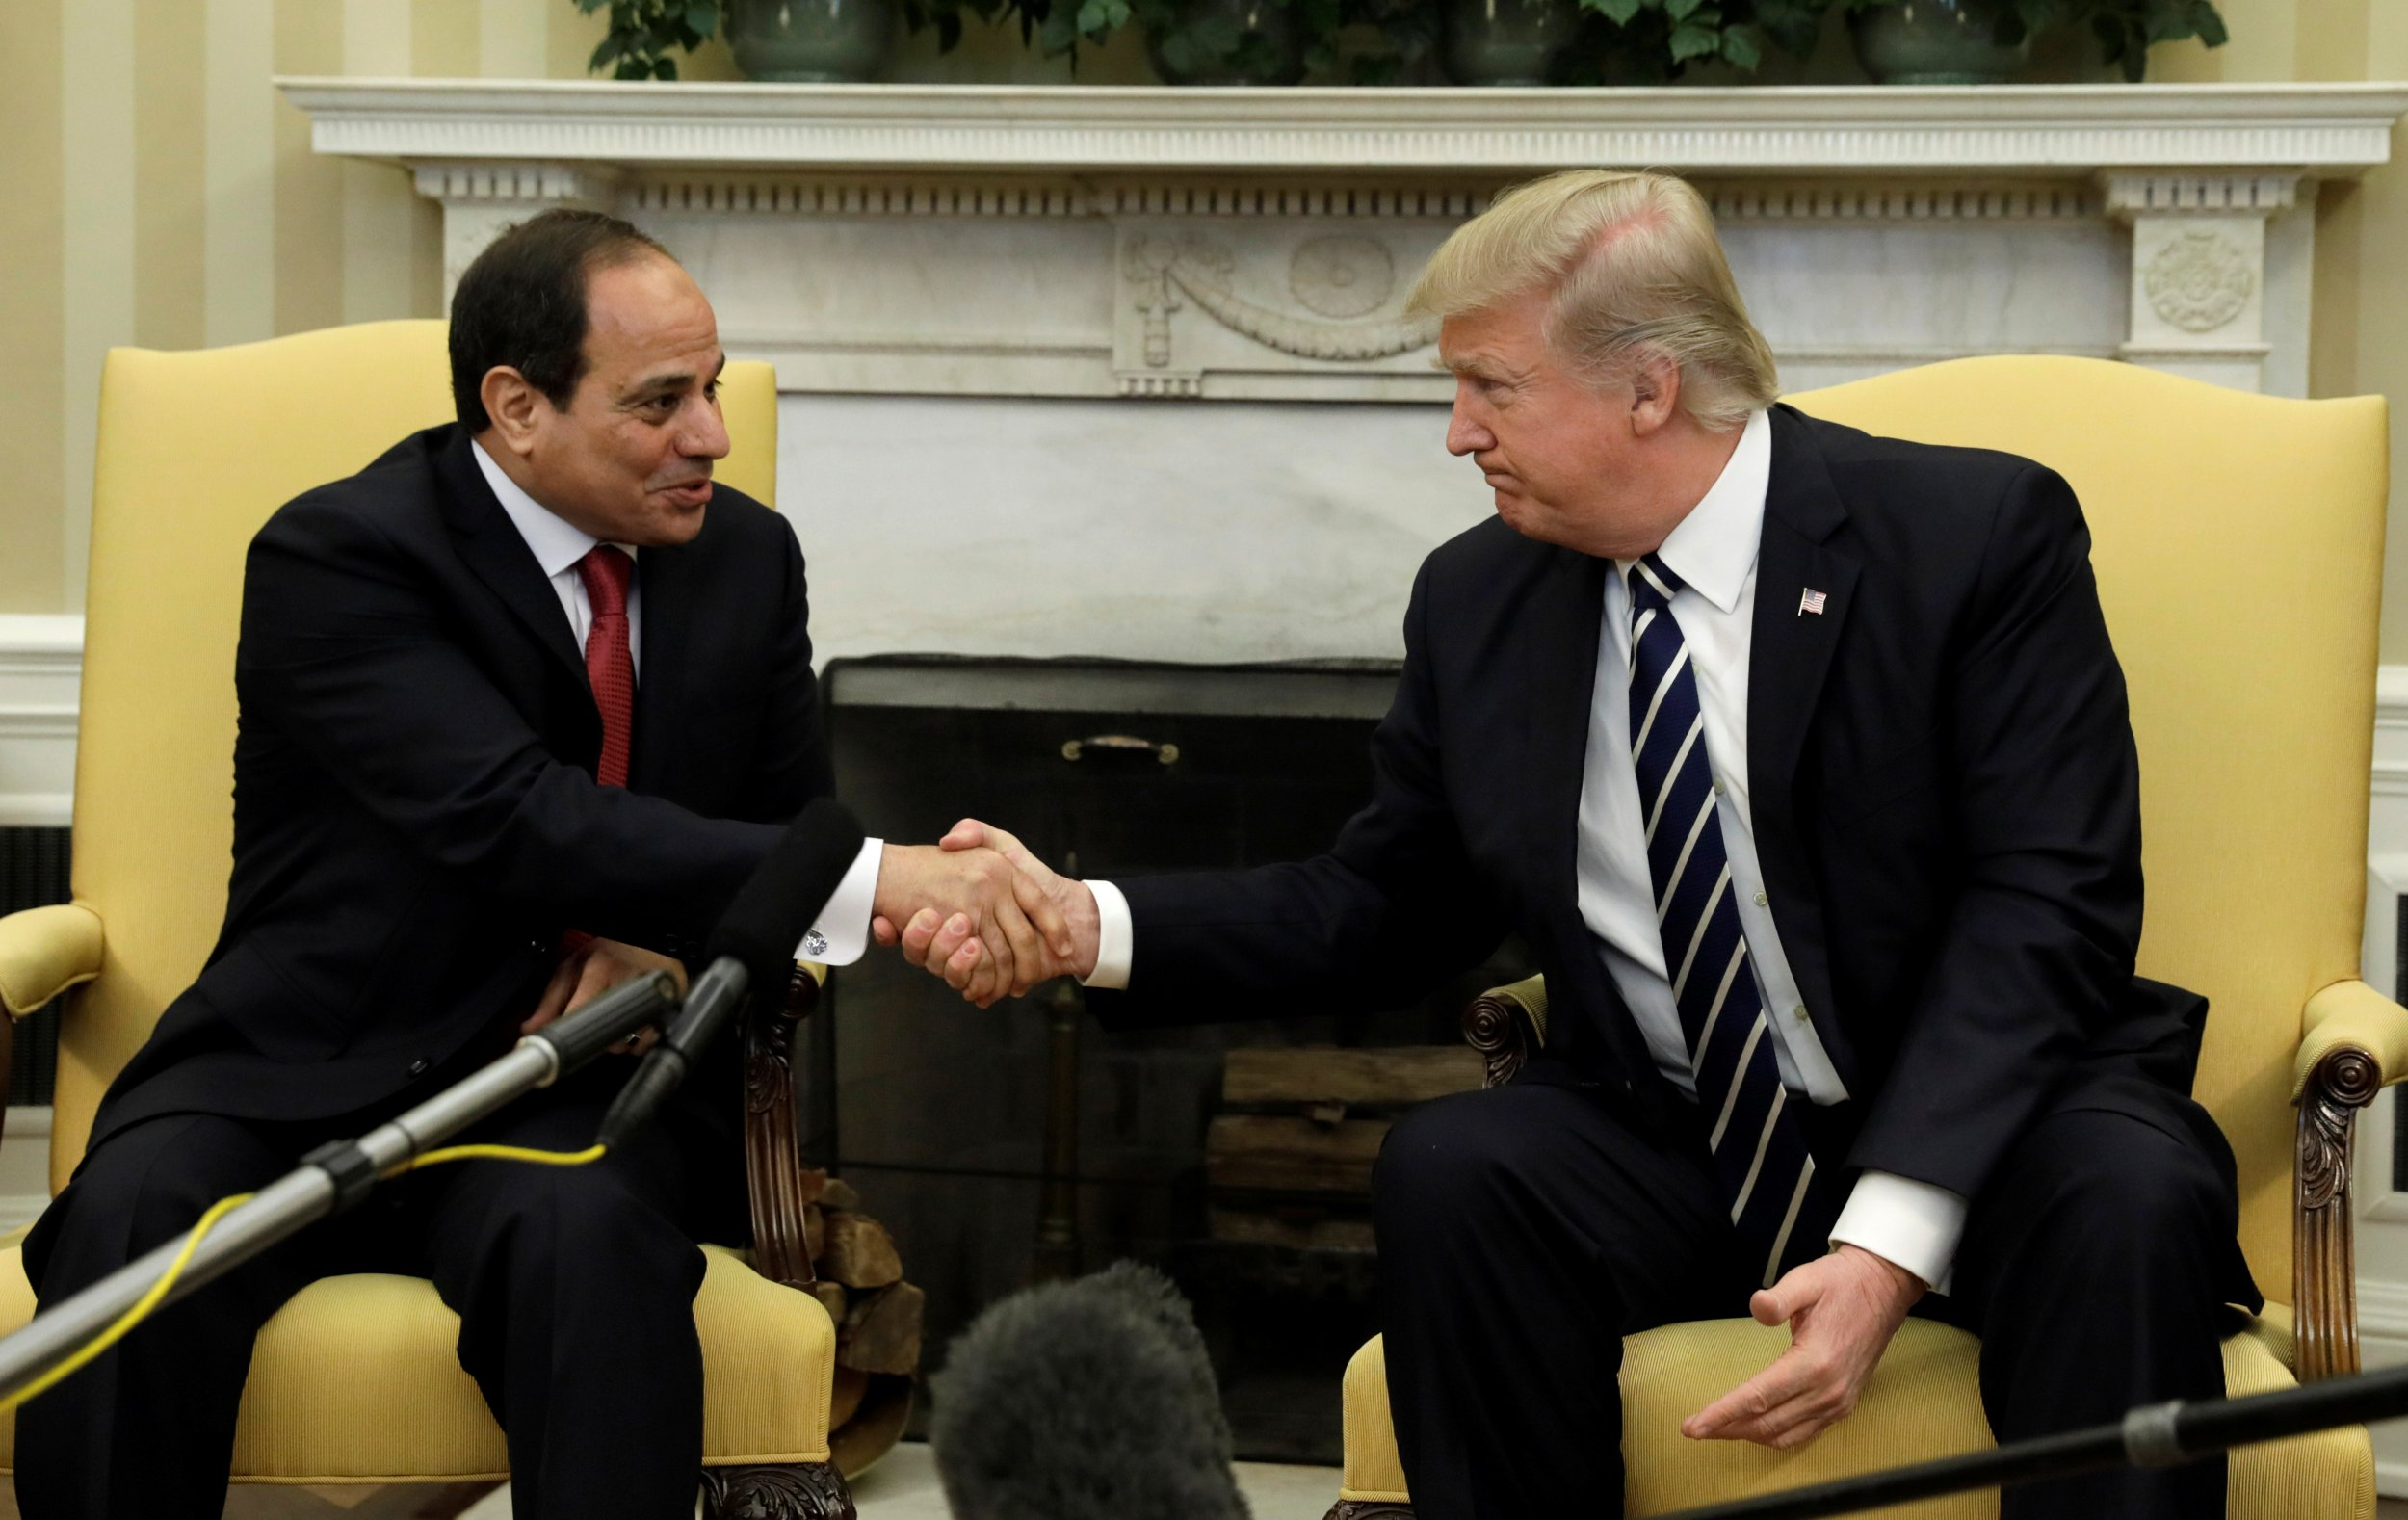 Trump Sissi meeting